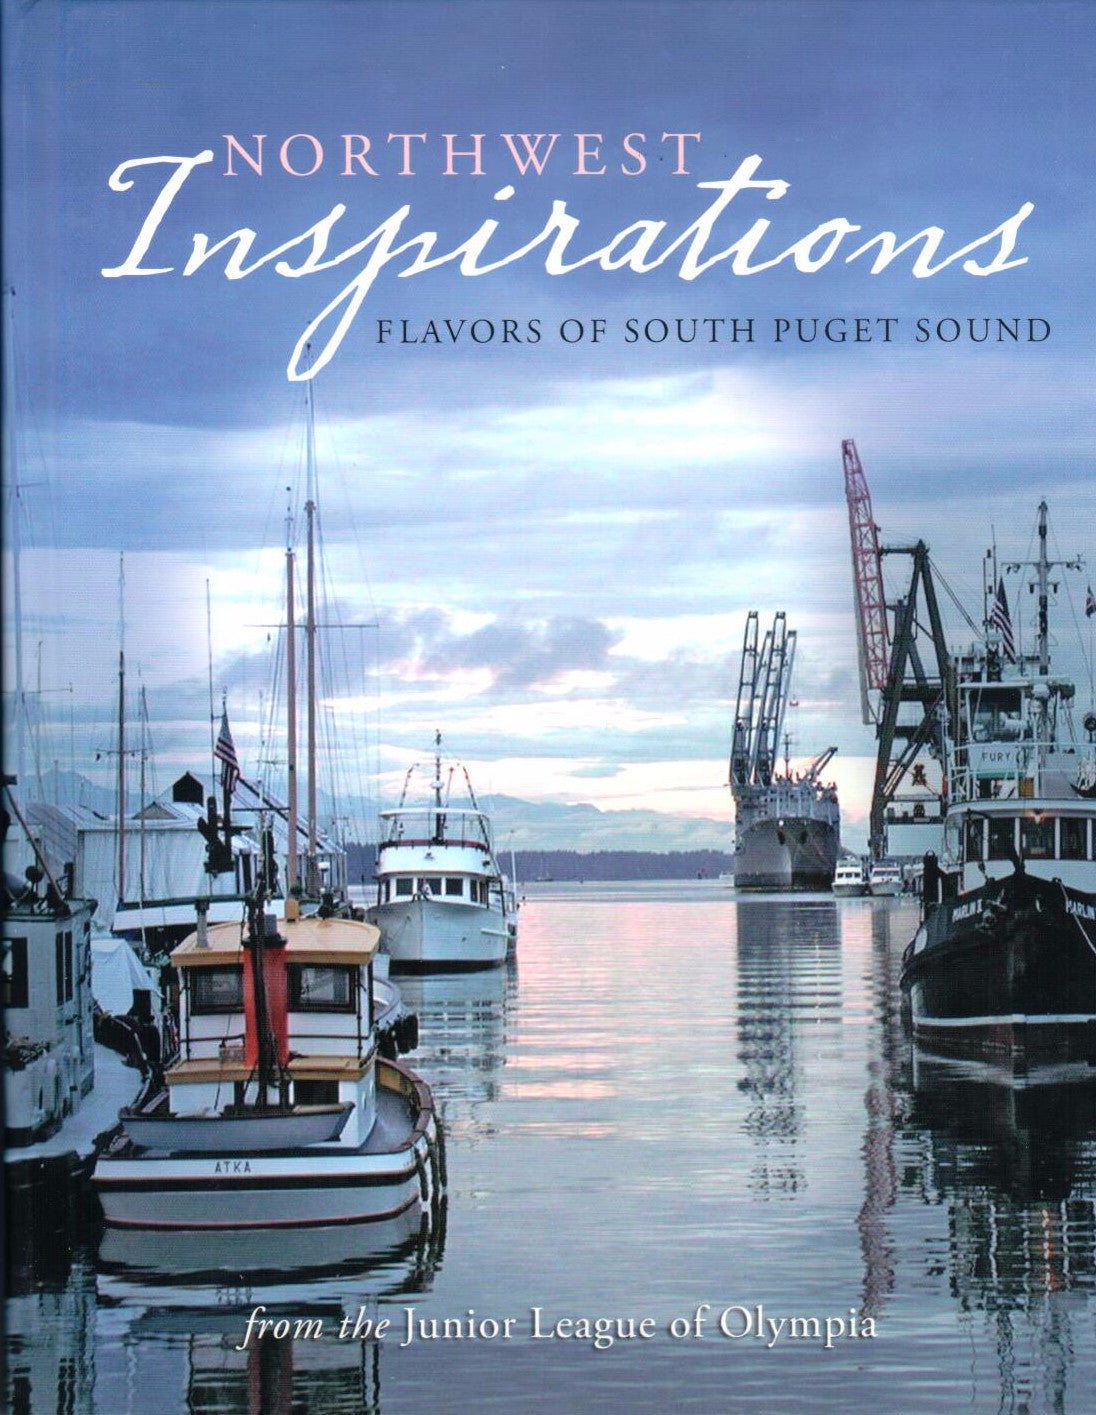 Northwest Inspirations; Flavors of South Puget Sound, from the Junior League of Olympia - Washington State Historical Society